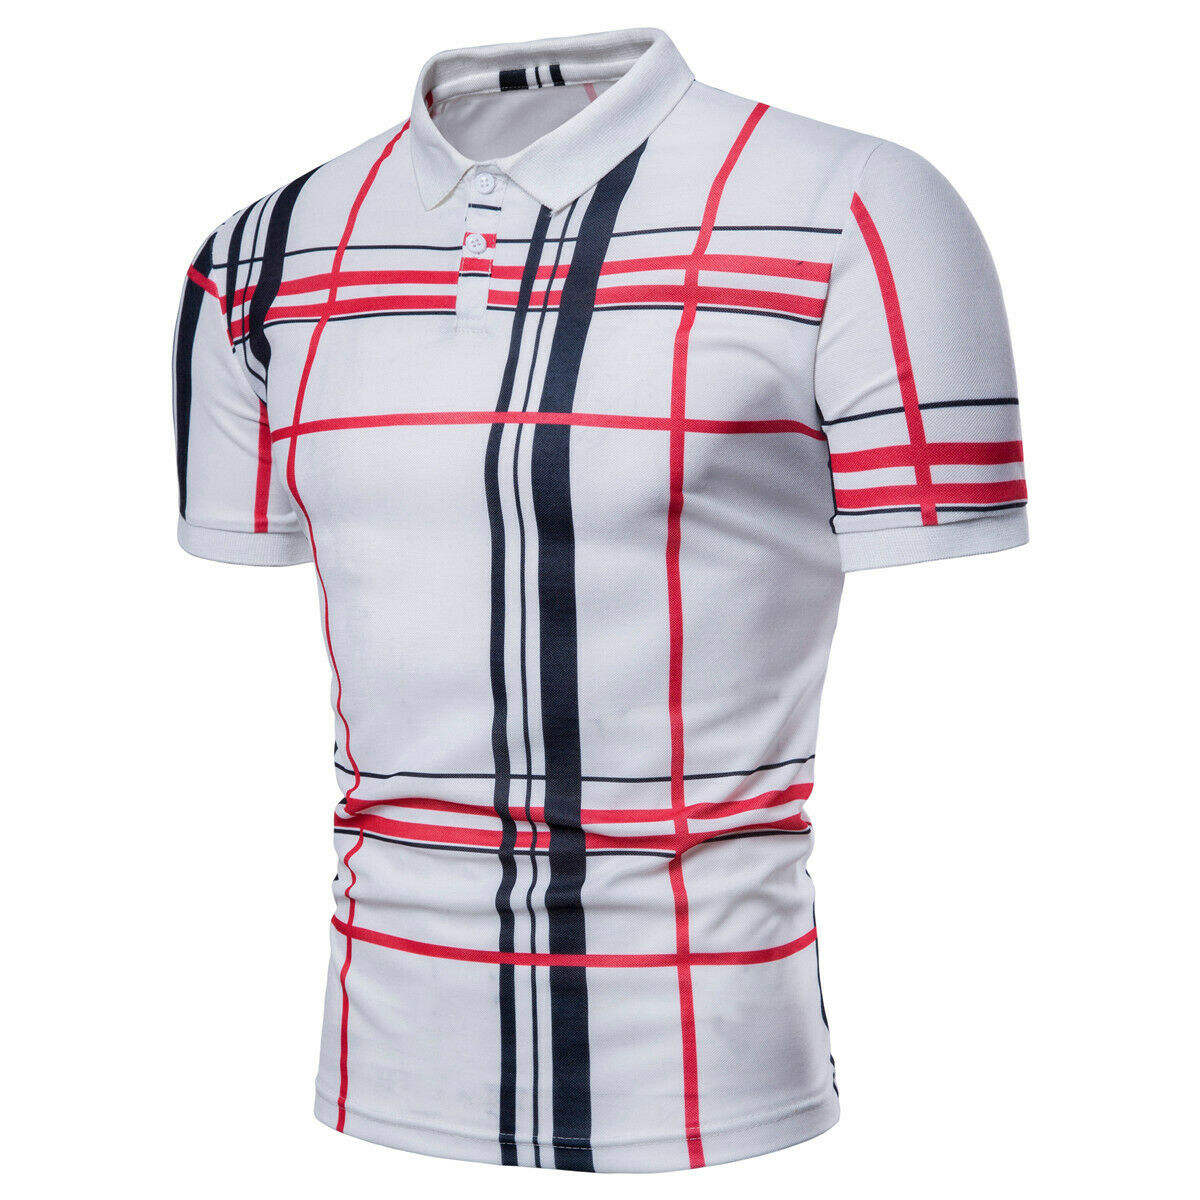 Droge Fit <span class=keywords><strong>Polo</strong></span> Shirt Custom Dye Sublimatie Printproces Logo Golfbal <span class=keywords><strong>Polo</strong></span> Hals Shirts Nieuwe Stijl Hoge Kwaliteit <span class=keywords><strong>Polo</strong></span> T-shirts Voor mannen